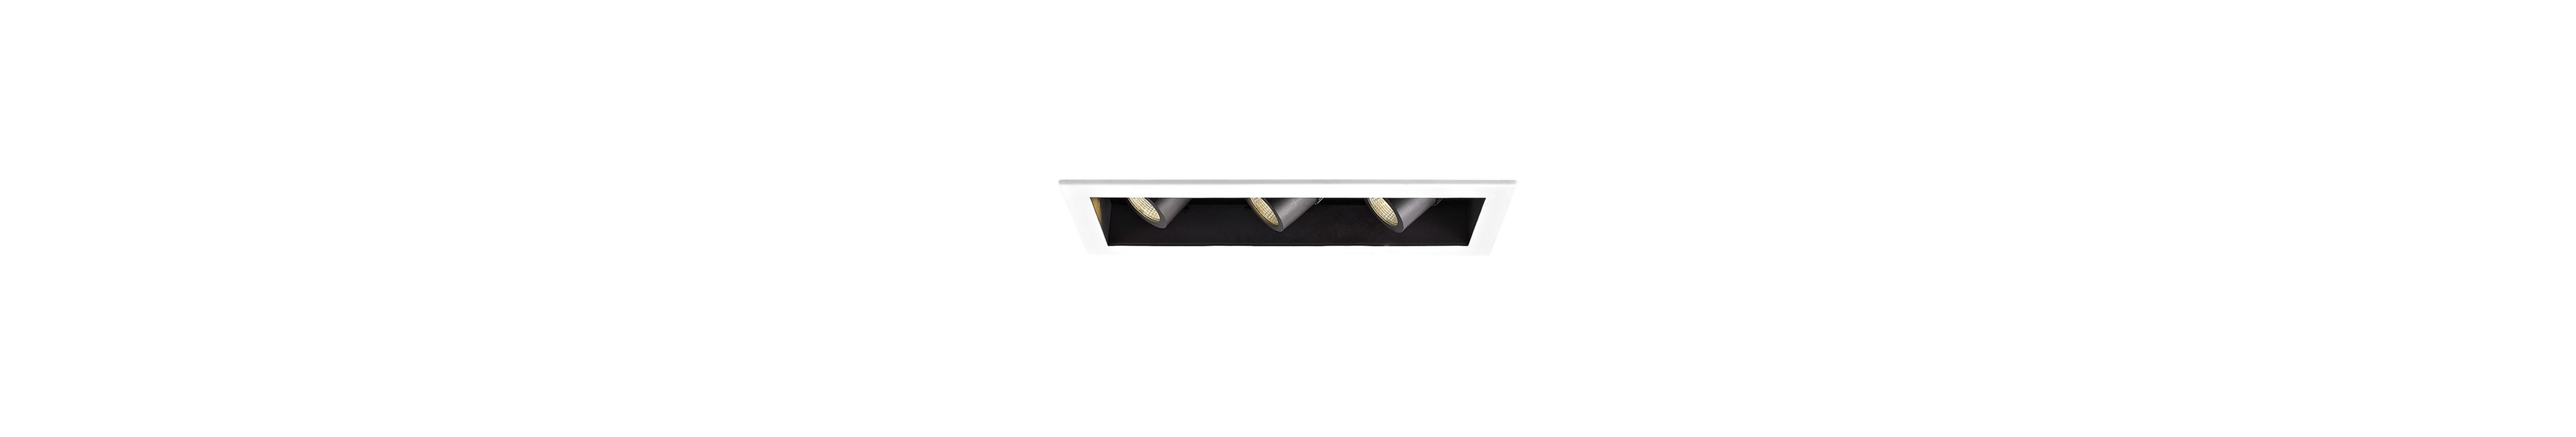 "WAC Lighting MT-4LD316N-F35 4"" Trim 3500K High Output LED Recessed"